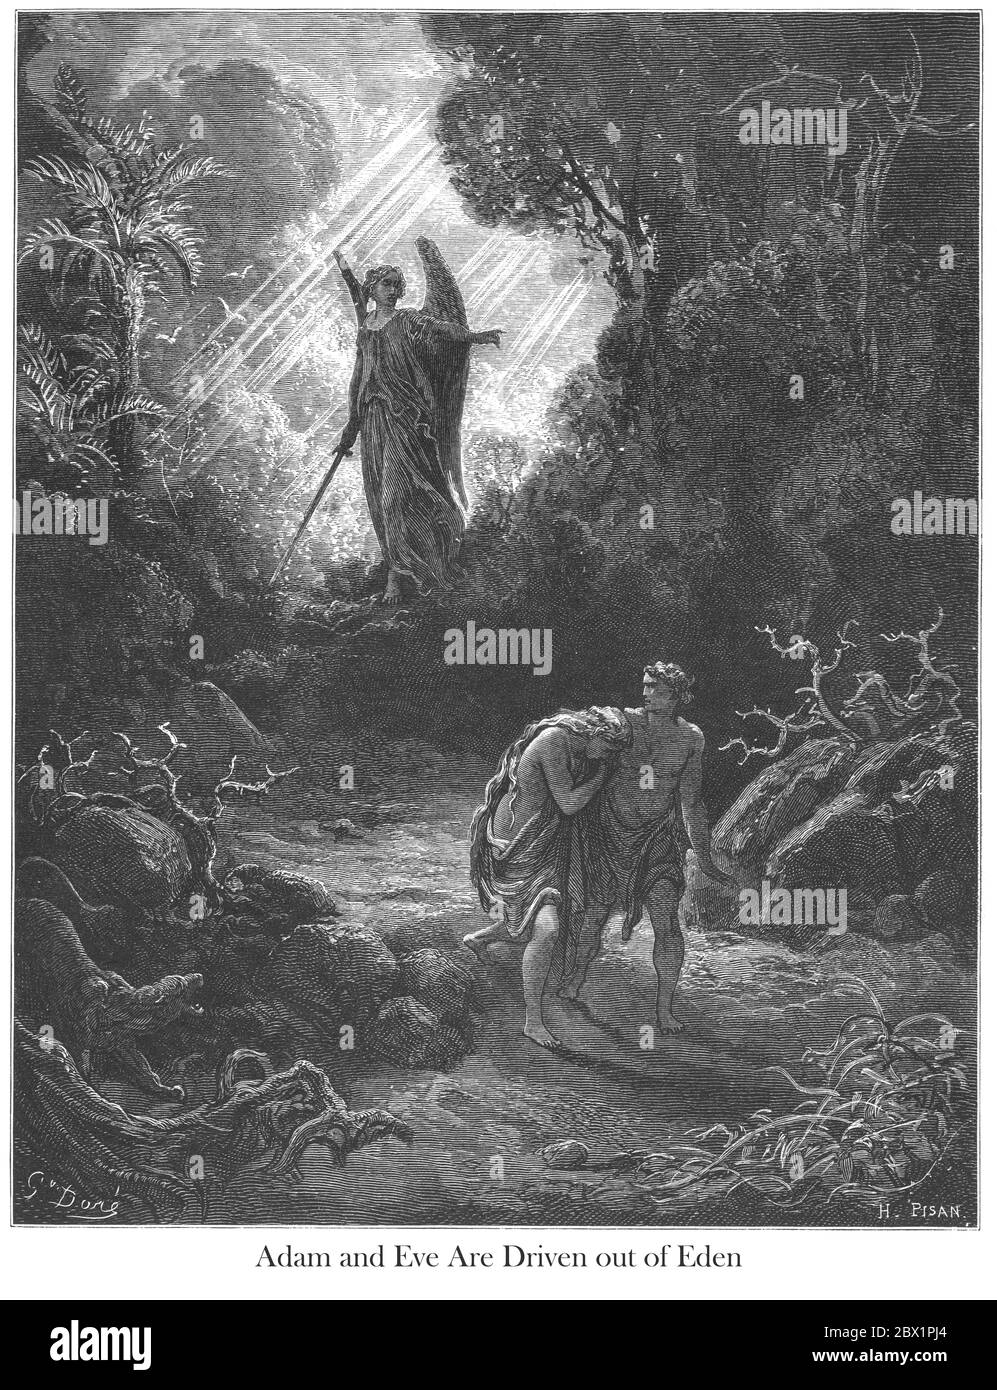 Adam and Eve Driven Out of Eden Genesis 3:24 From the book 'Bible Gallery' Illustrated by Gustave Dore with Memoir of Doré and Descriptive Letter-press by Talbot W. Chambers D.D. Published by Cassell & Company Limited in London and simultaneously by Mame in Tours, France in 1866 Stock Photo